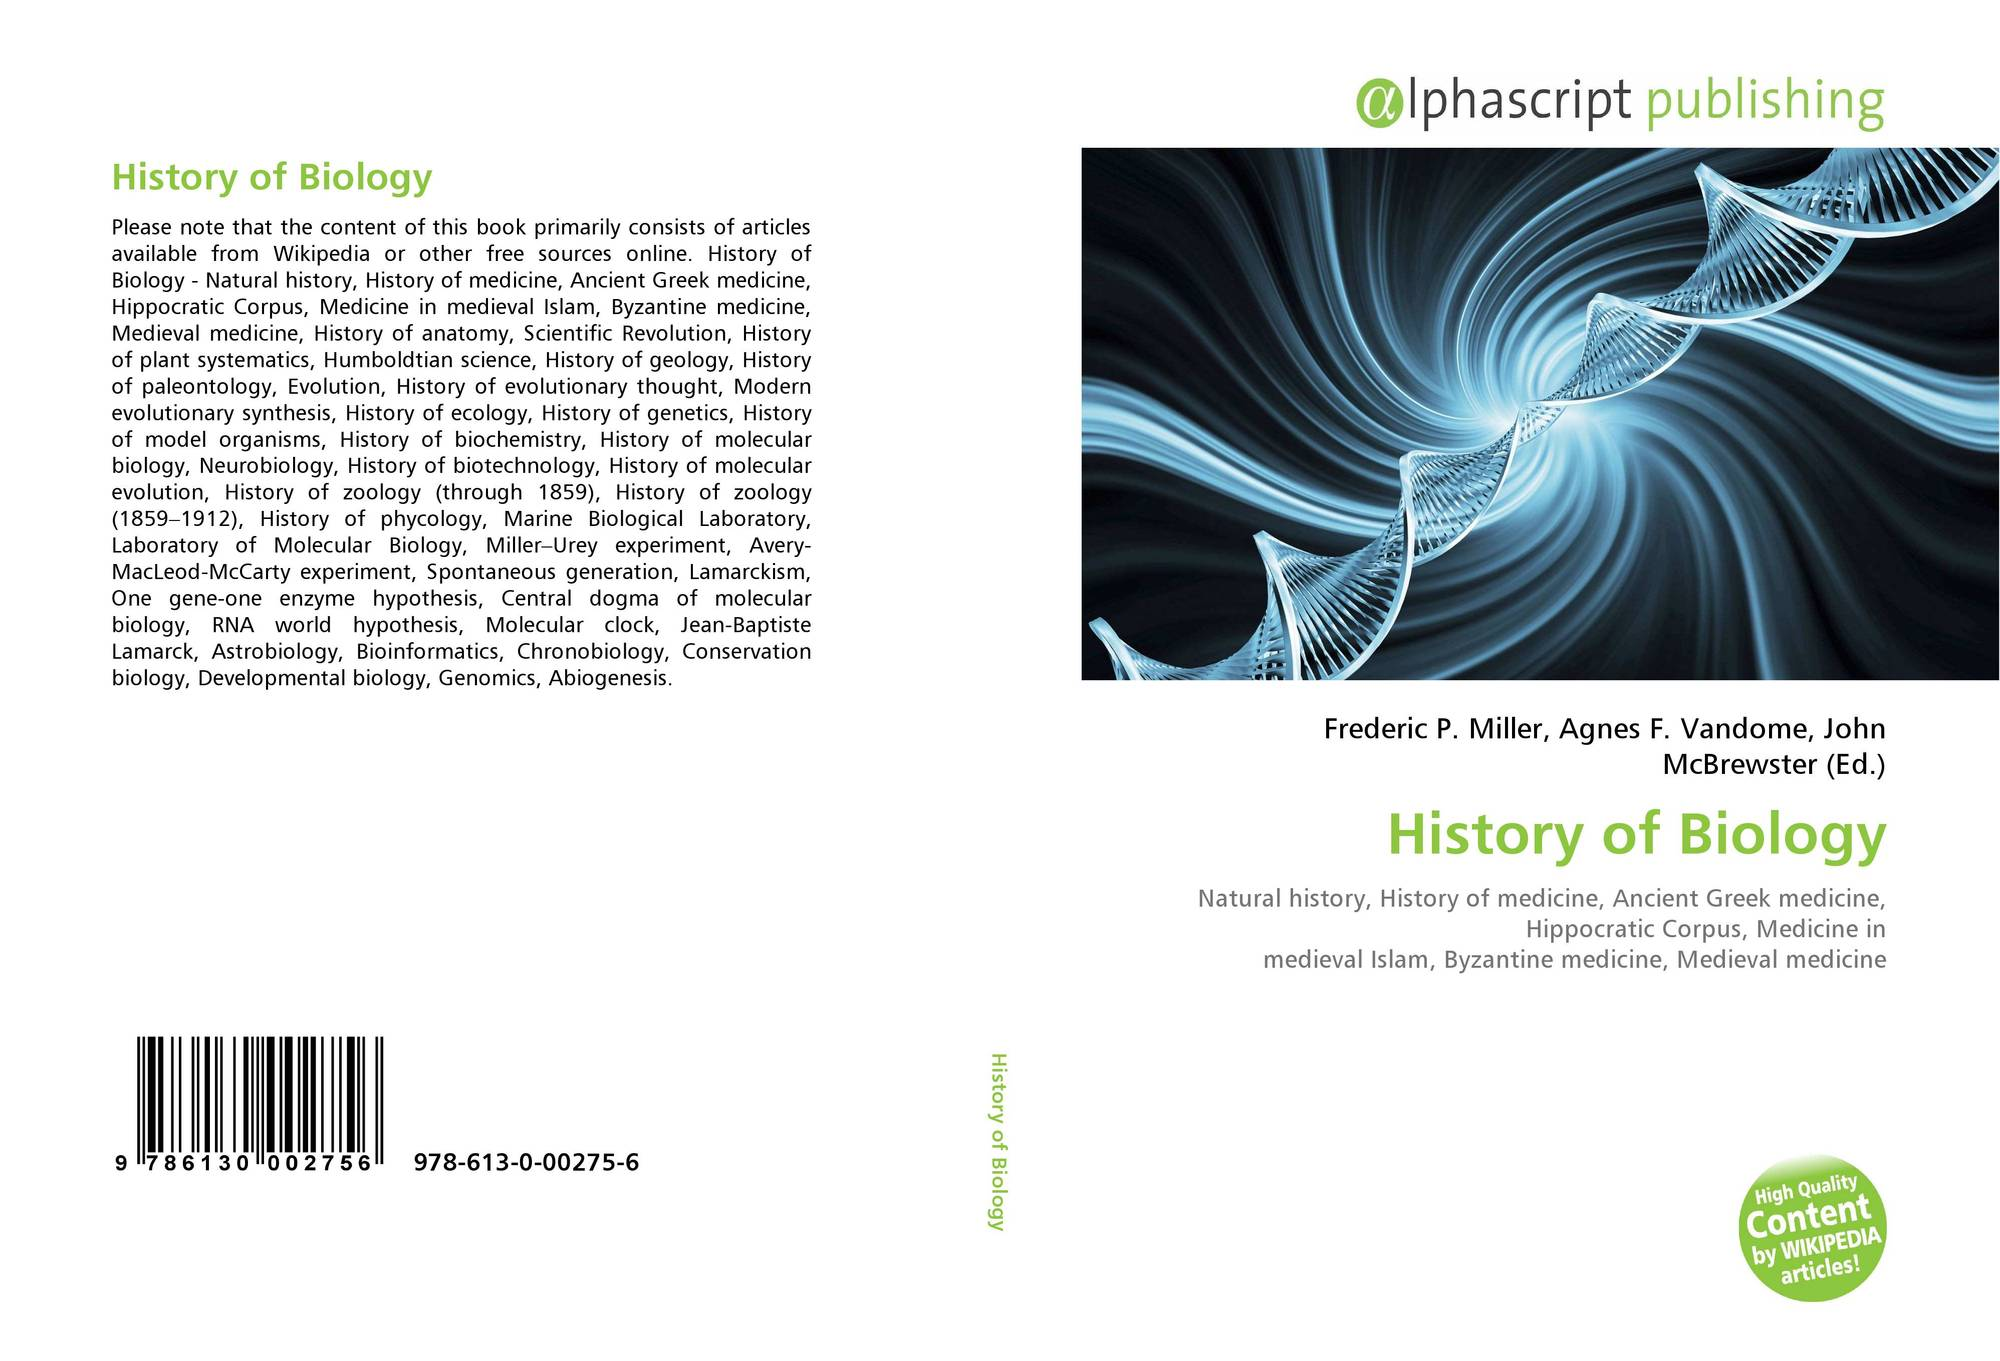 the history of molecular modeling biology essay The history of molecular biology involves the convergence of various, previously distinct biological and physical disciplines: biochemistry, genetics, microbiology,virology and physics numerous physicists and chemists also took an interest in what would become molecular biology.